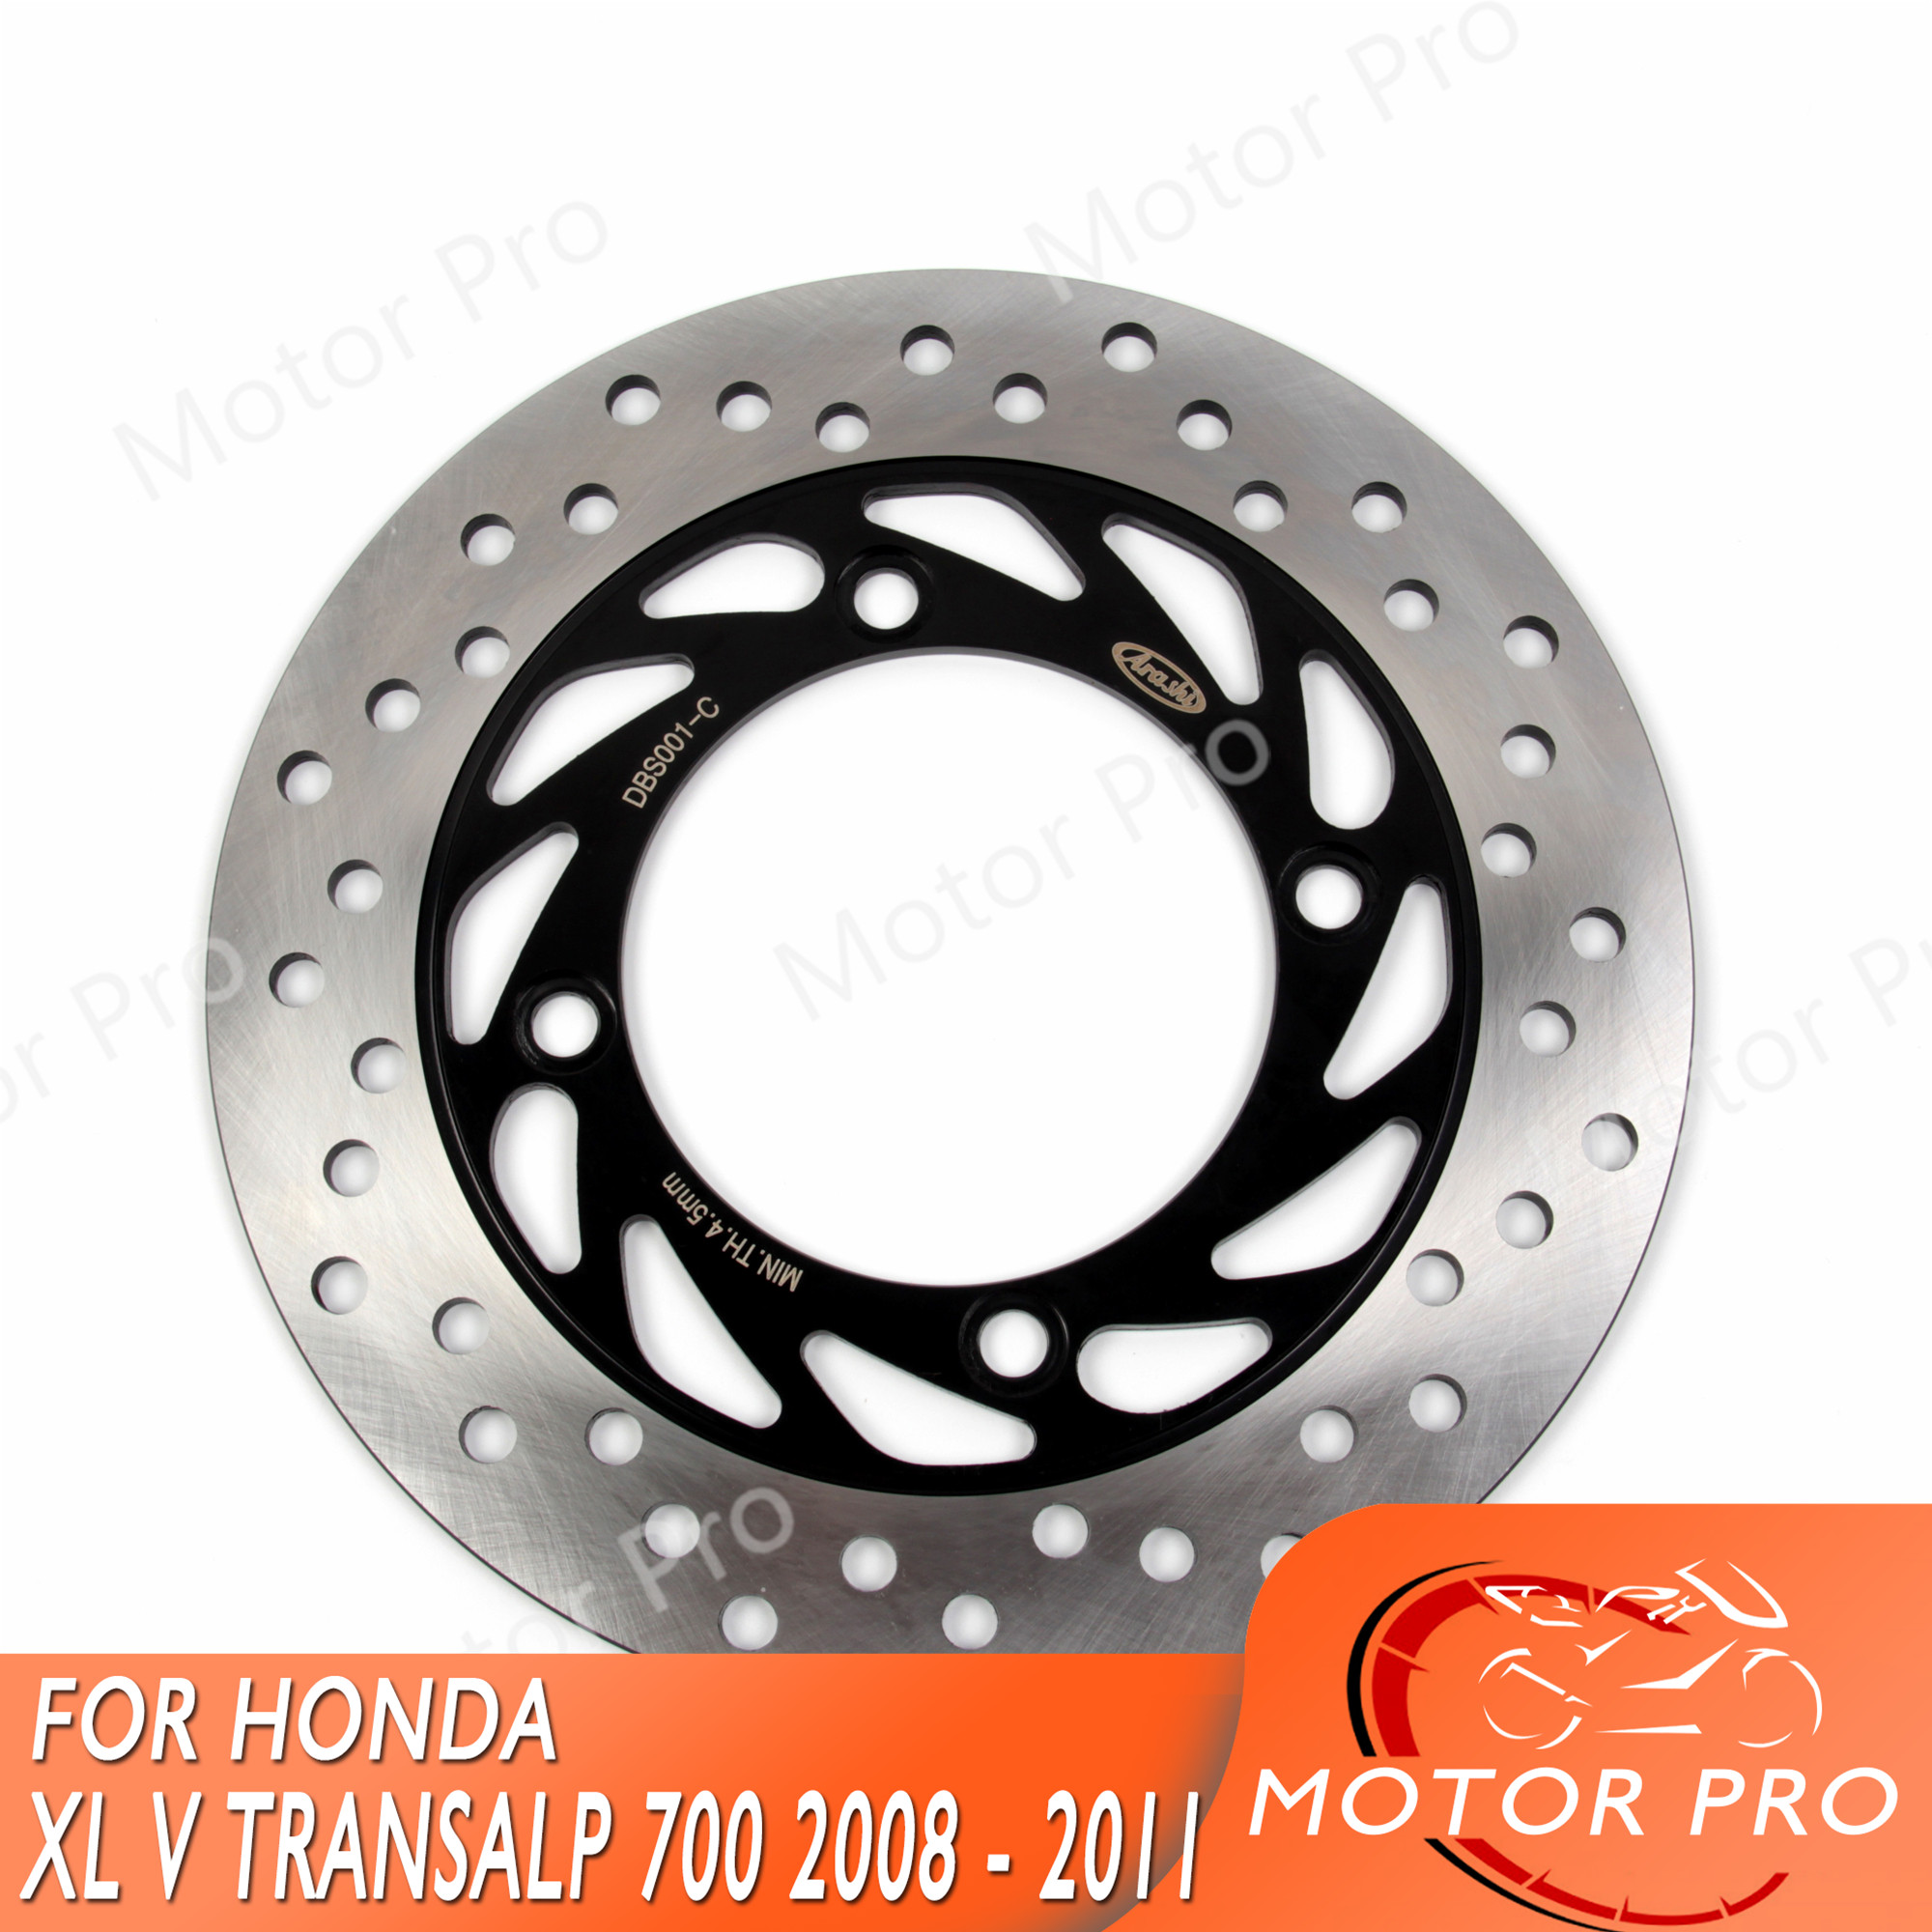 For <font><b>Honda</b></font> <font><b>XL</b></font> V TRANSALP <font><b>700</b></font> 2008 - 2011 ABS Rear Brake Disk Disc Rotor Motorcycle Accessories XLV700 XLV <font><b>700</b></font> 2009 2010 XL700V image